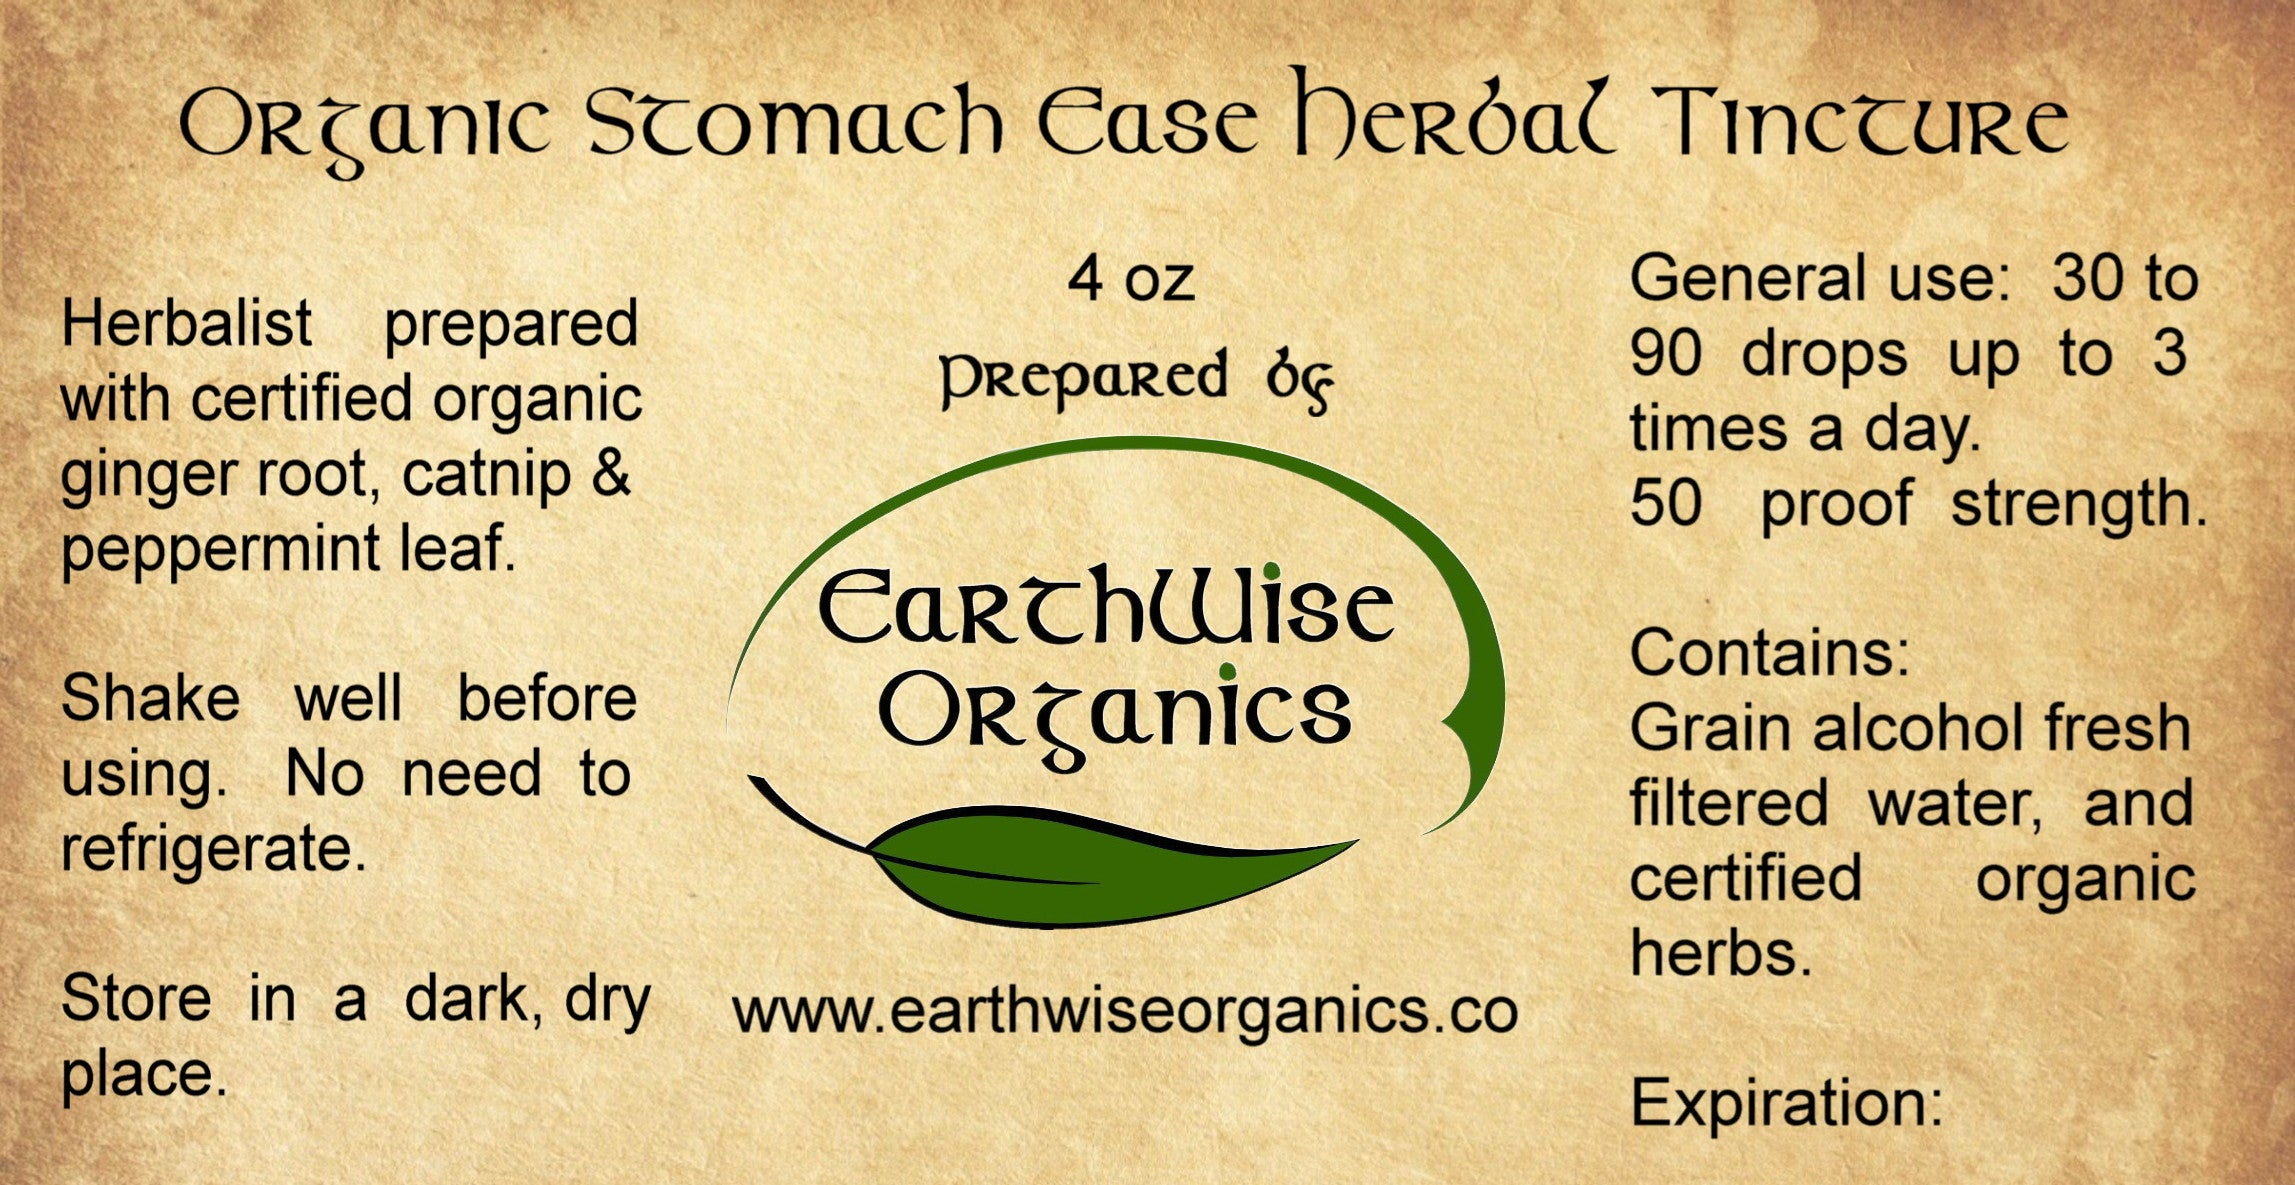 stomach ease organic herbal tincture label